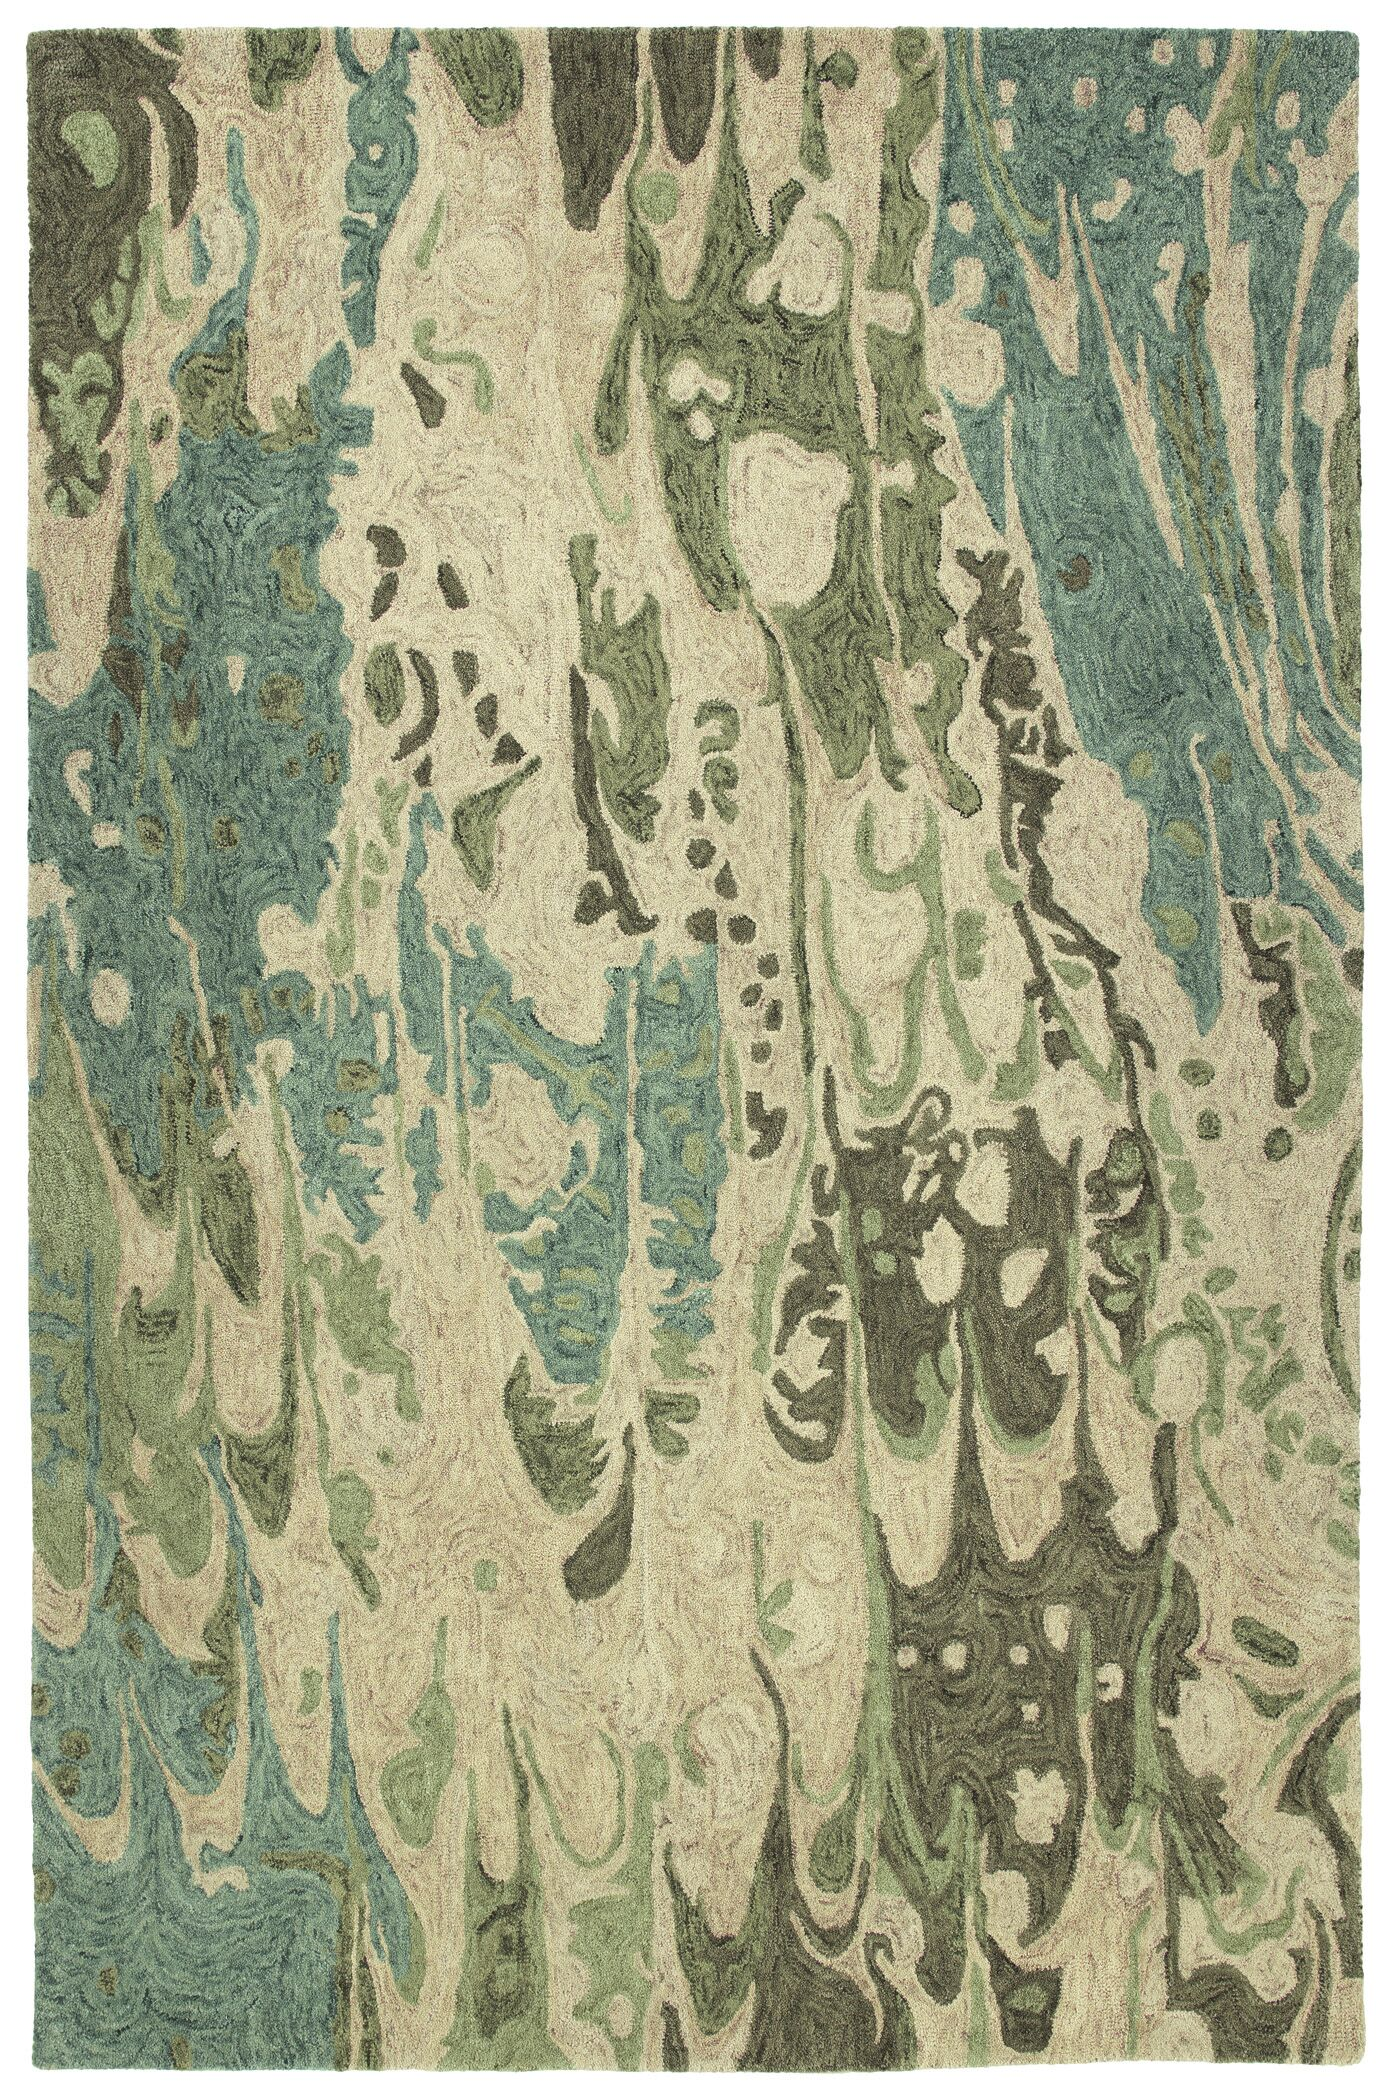 Bargas Hand Tufted Wool Sea Foam/Beige Area Rug Rug Size: Rectangle 5' x 7'9